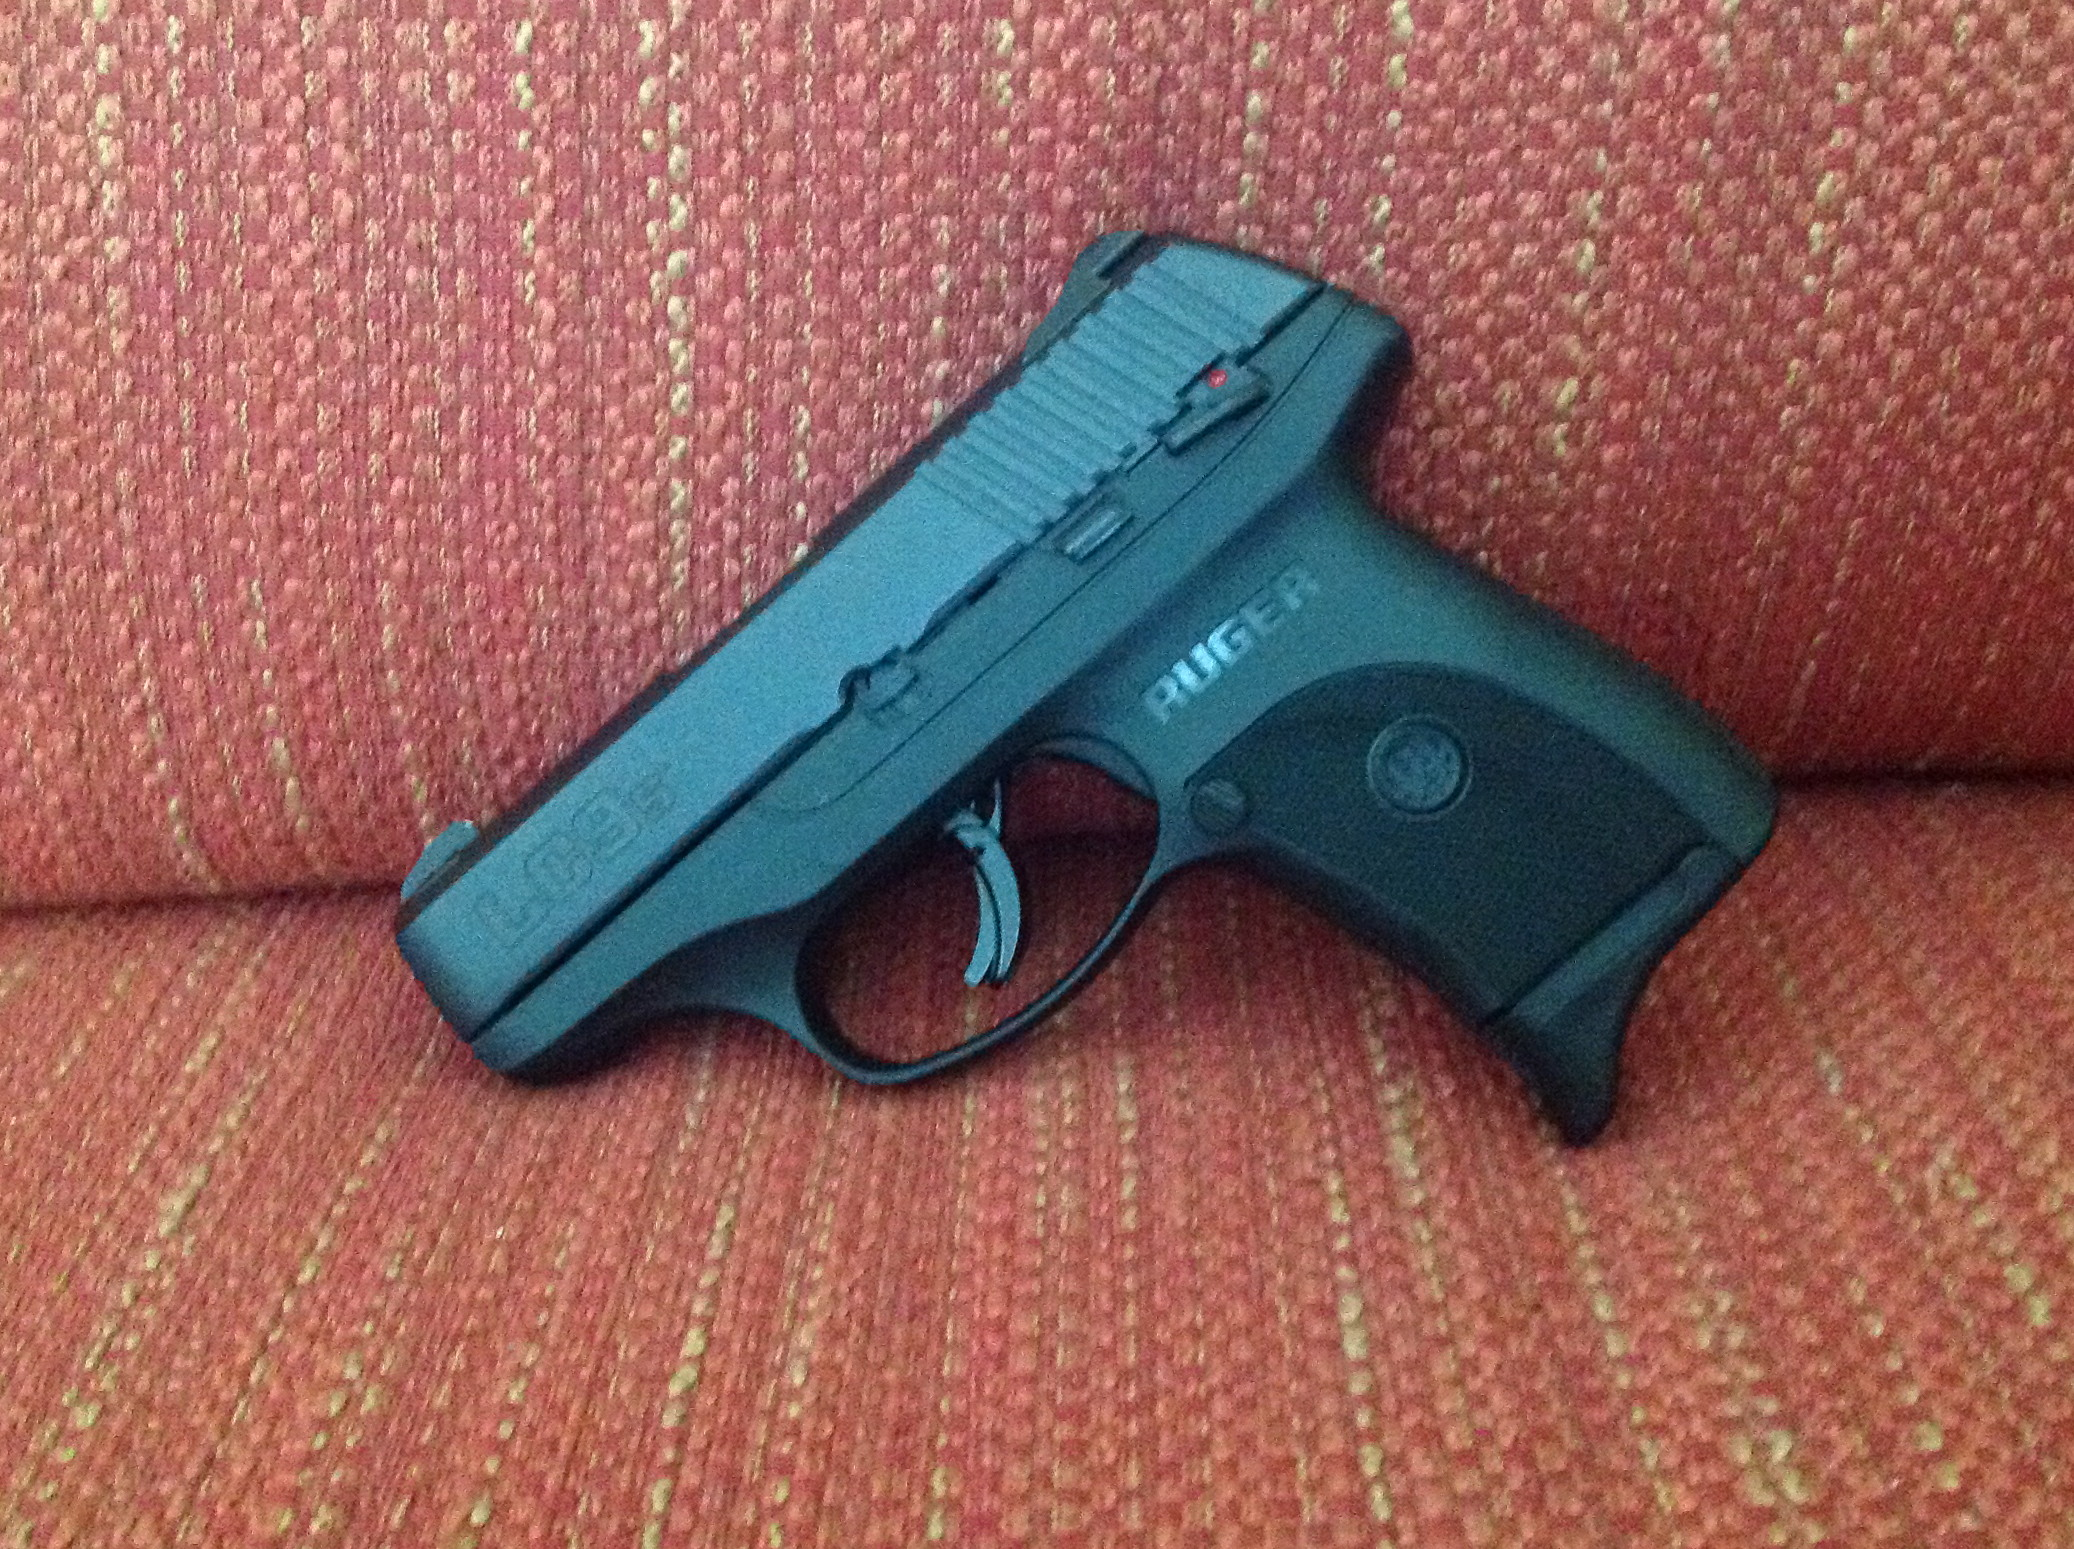 Another concealed carry option-Ruger's LC9S